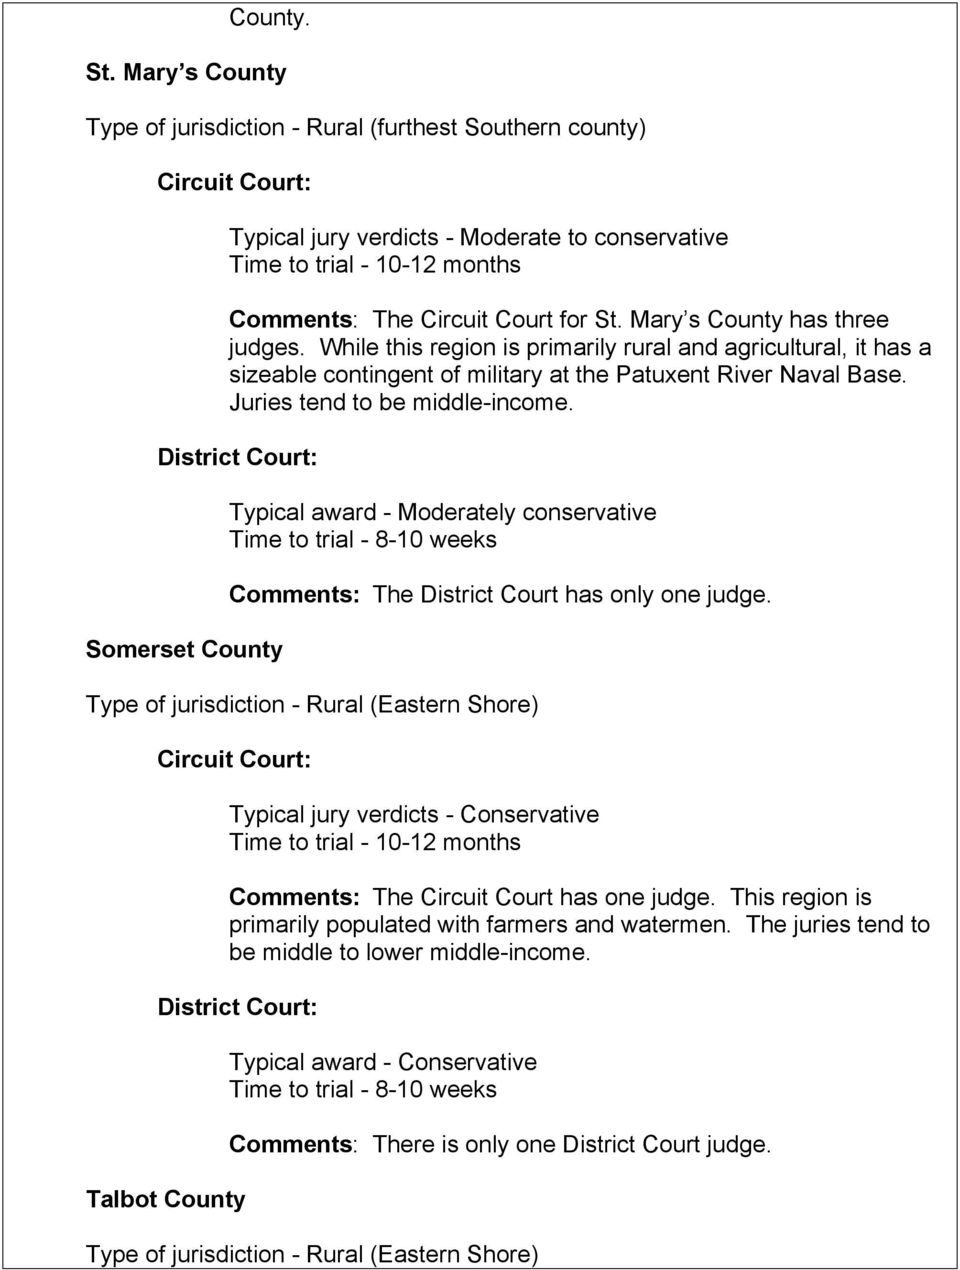 Somerset County Typical award - Moderately conservative Comments: The District Court has only one judge.